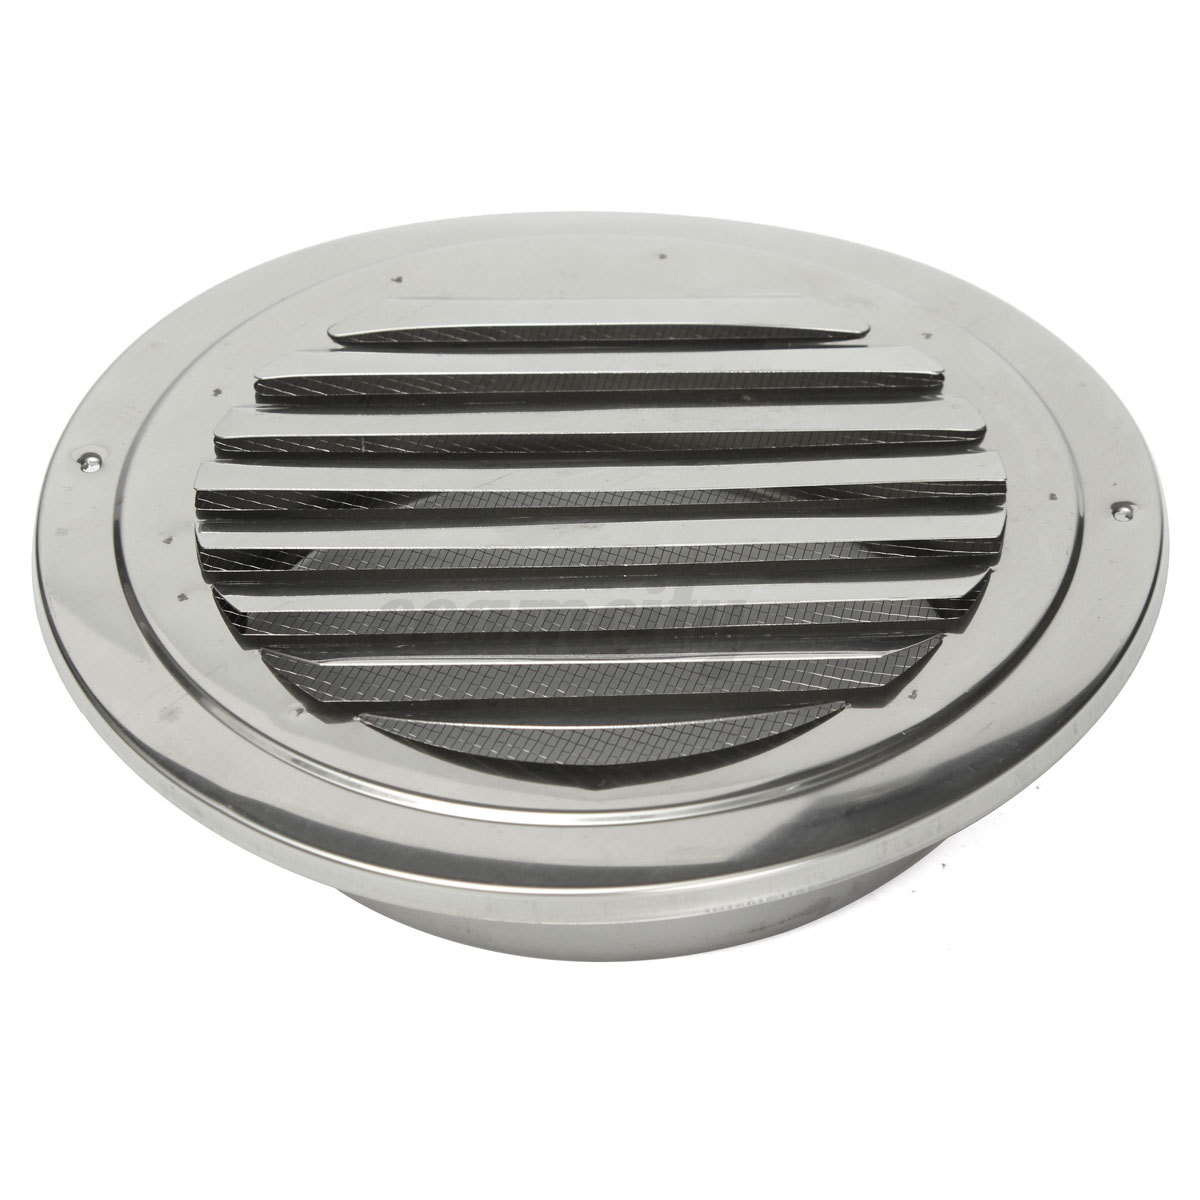 Ventilation Ducts Information : Metal circle air vent grille round ducting ventilation